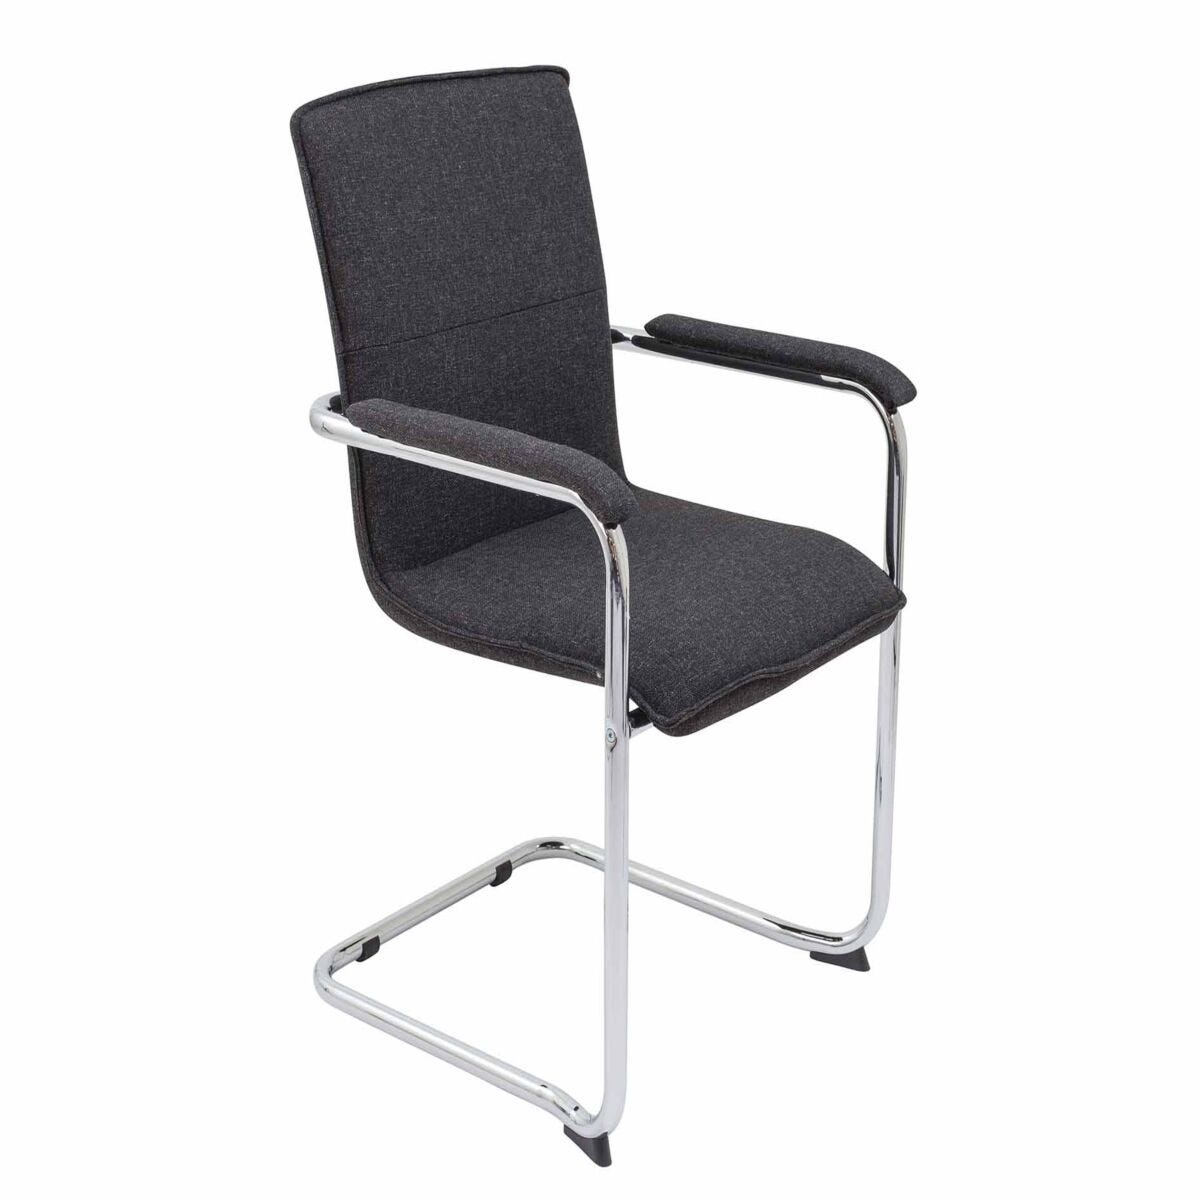 TC Office Pavia Fabric Meeting Chair with Padded Arms